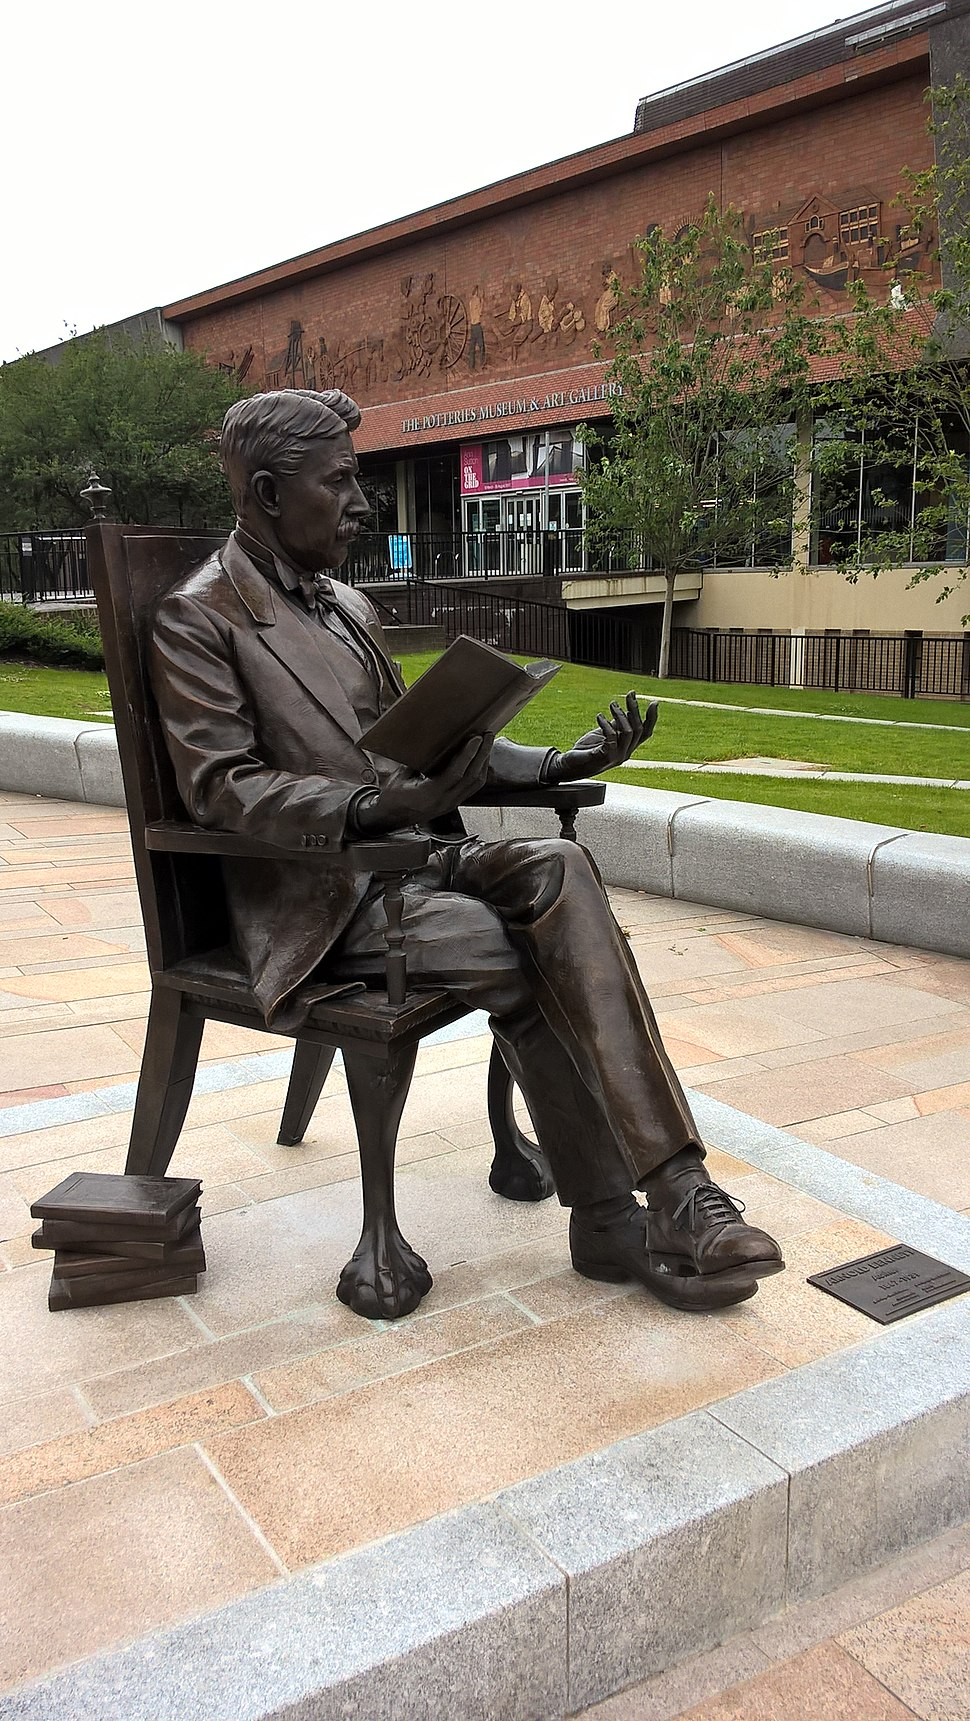 Statue of Arnold Bennett outside the Potteries Museum & Art Gallery in Hanley, Stoke-On-Trent